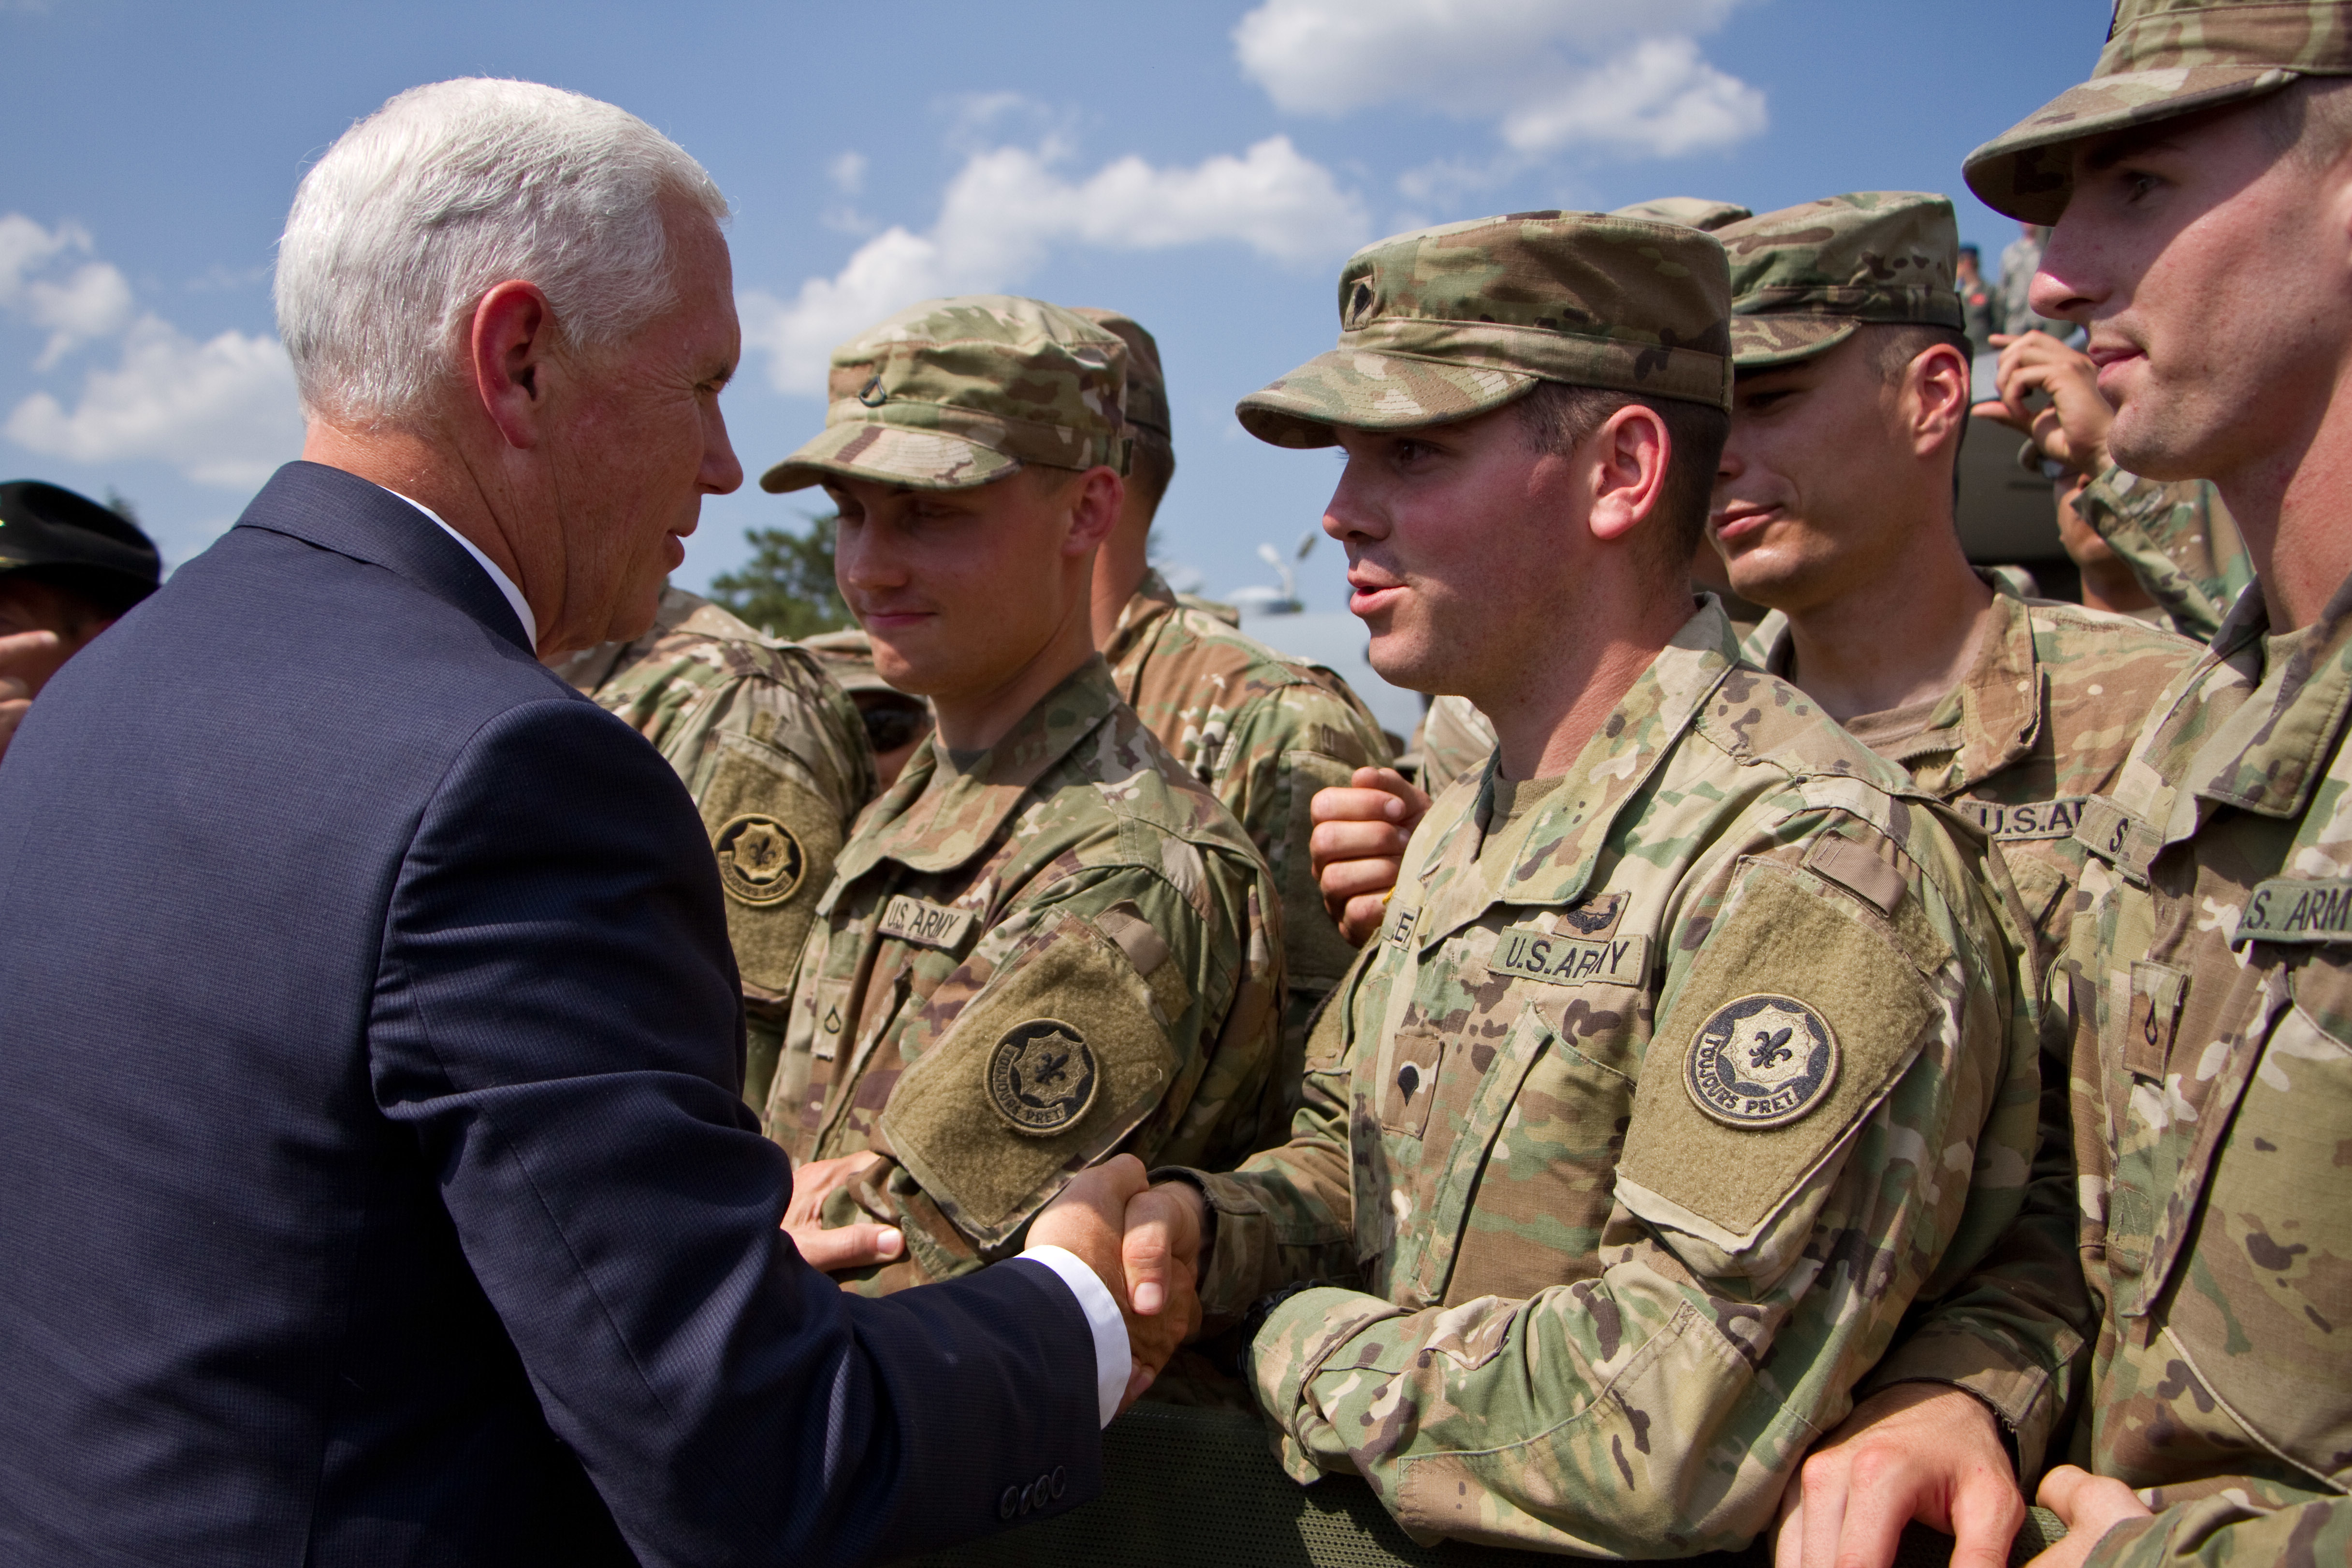 Vice President Mike Pence meets Soldiers assigned to 2d Cavalry Regiment Aug. 1, 2017 in Tbilisi, Georgia during Noble Partner 17. Noble Partner 17 is a U.S. Army Europe-led exercise designed to support the training, progression and eventual certification of Georgia's second light infantry company's contribution to the NATO Response Force. The training will take place at the Vaziani Training Area.